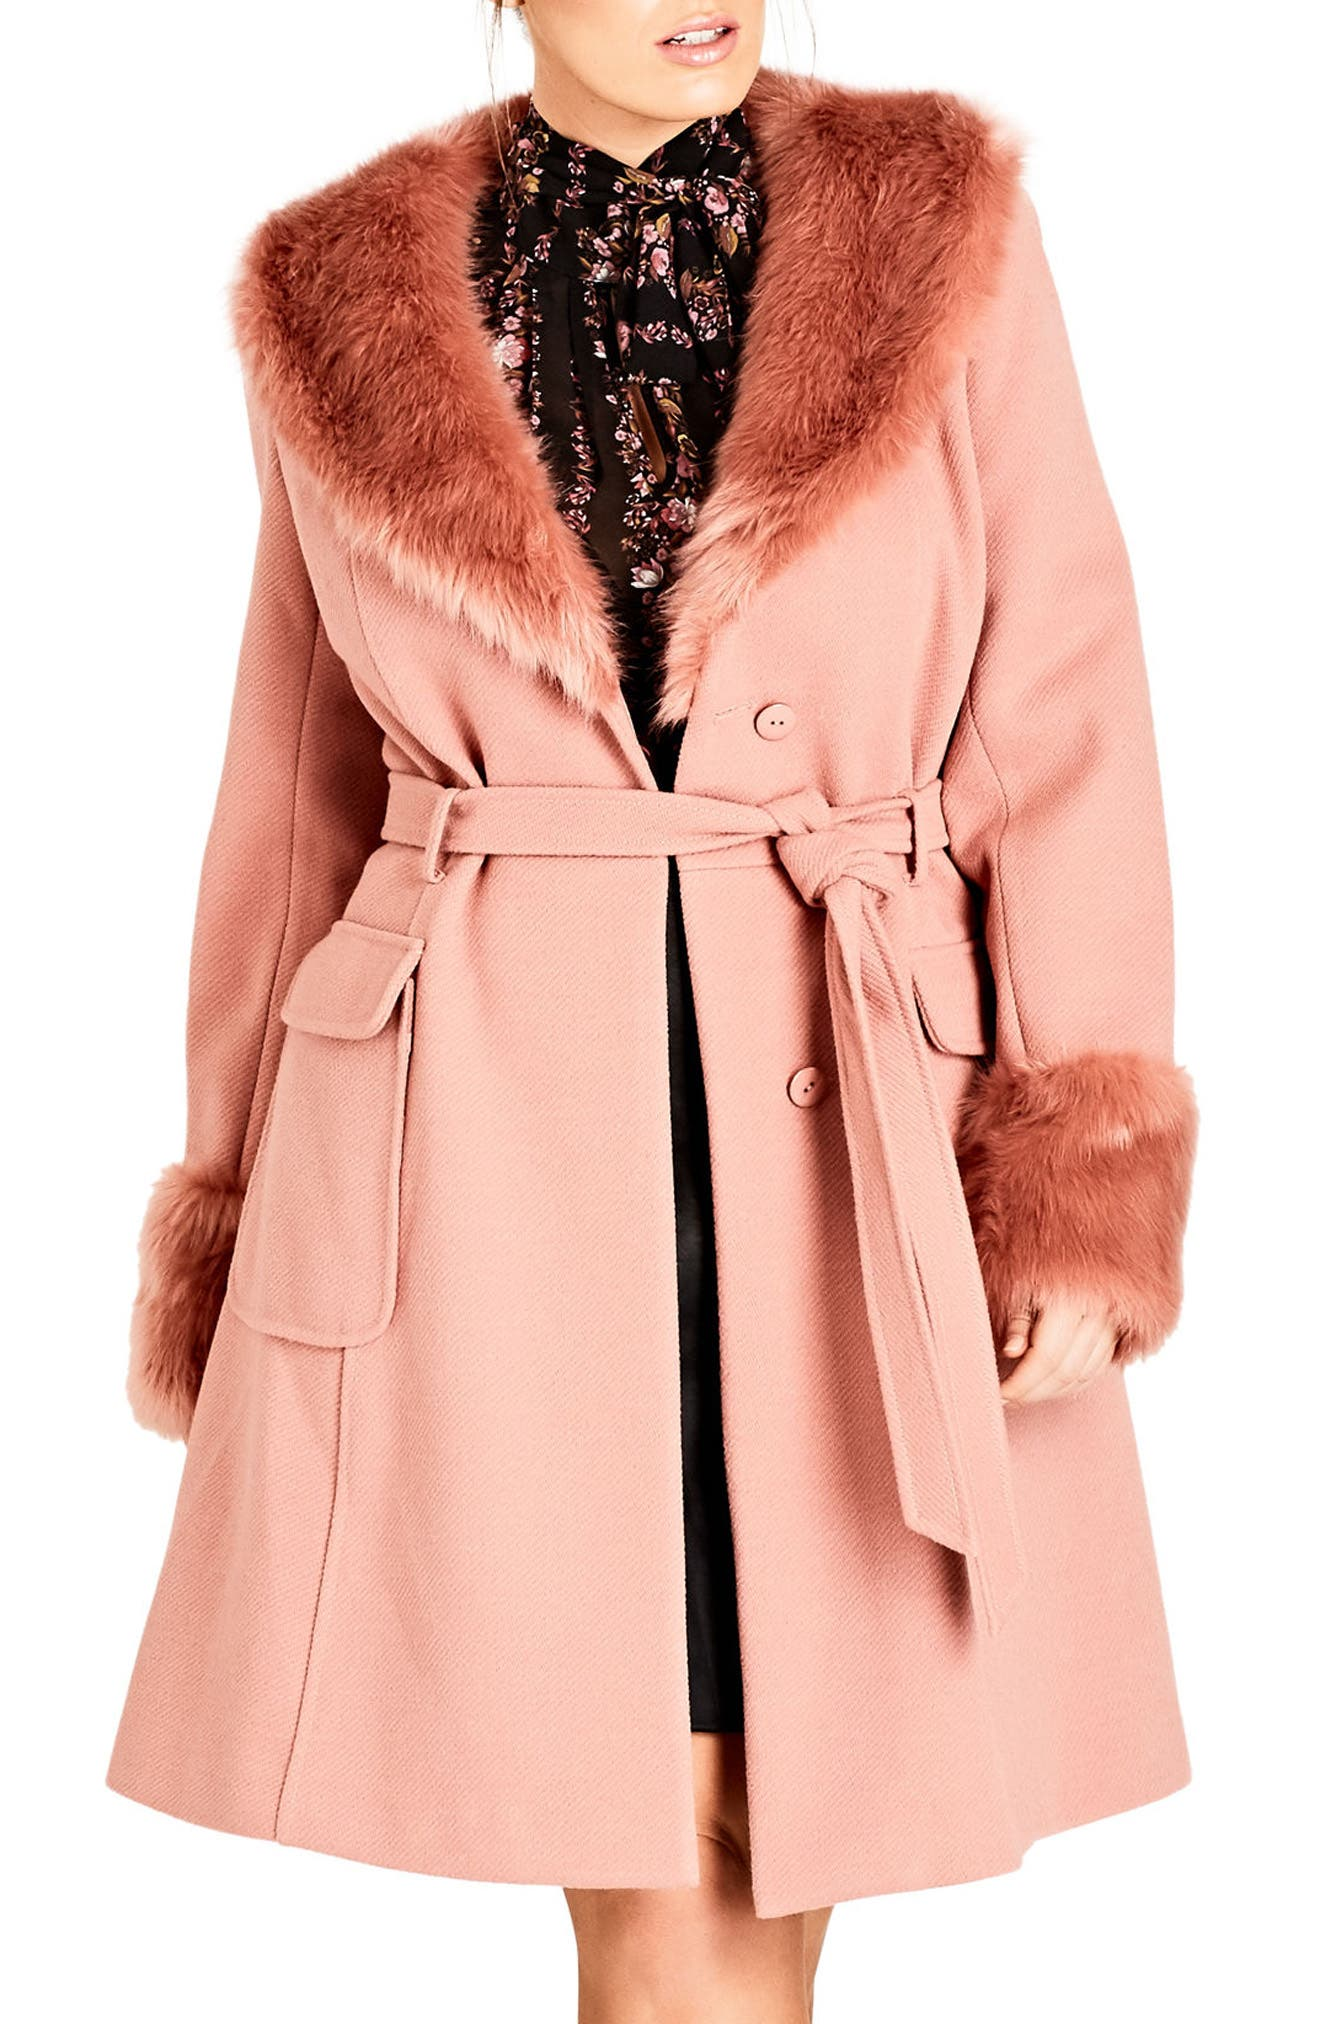 Alternate Image 1 Selected - City Chic Make Me Blush Faux Fur Peacoat (Plus Size)